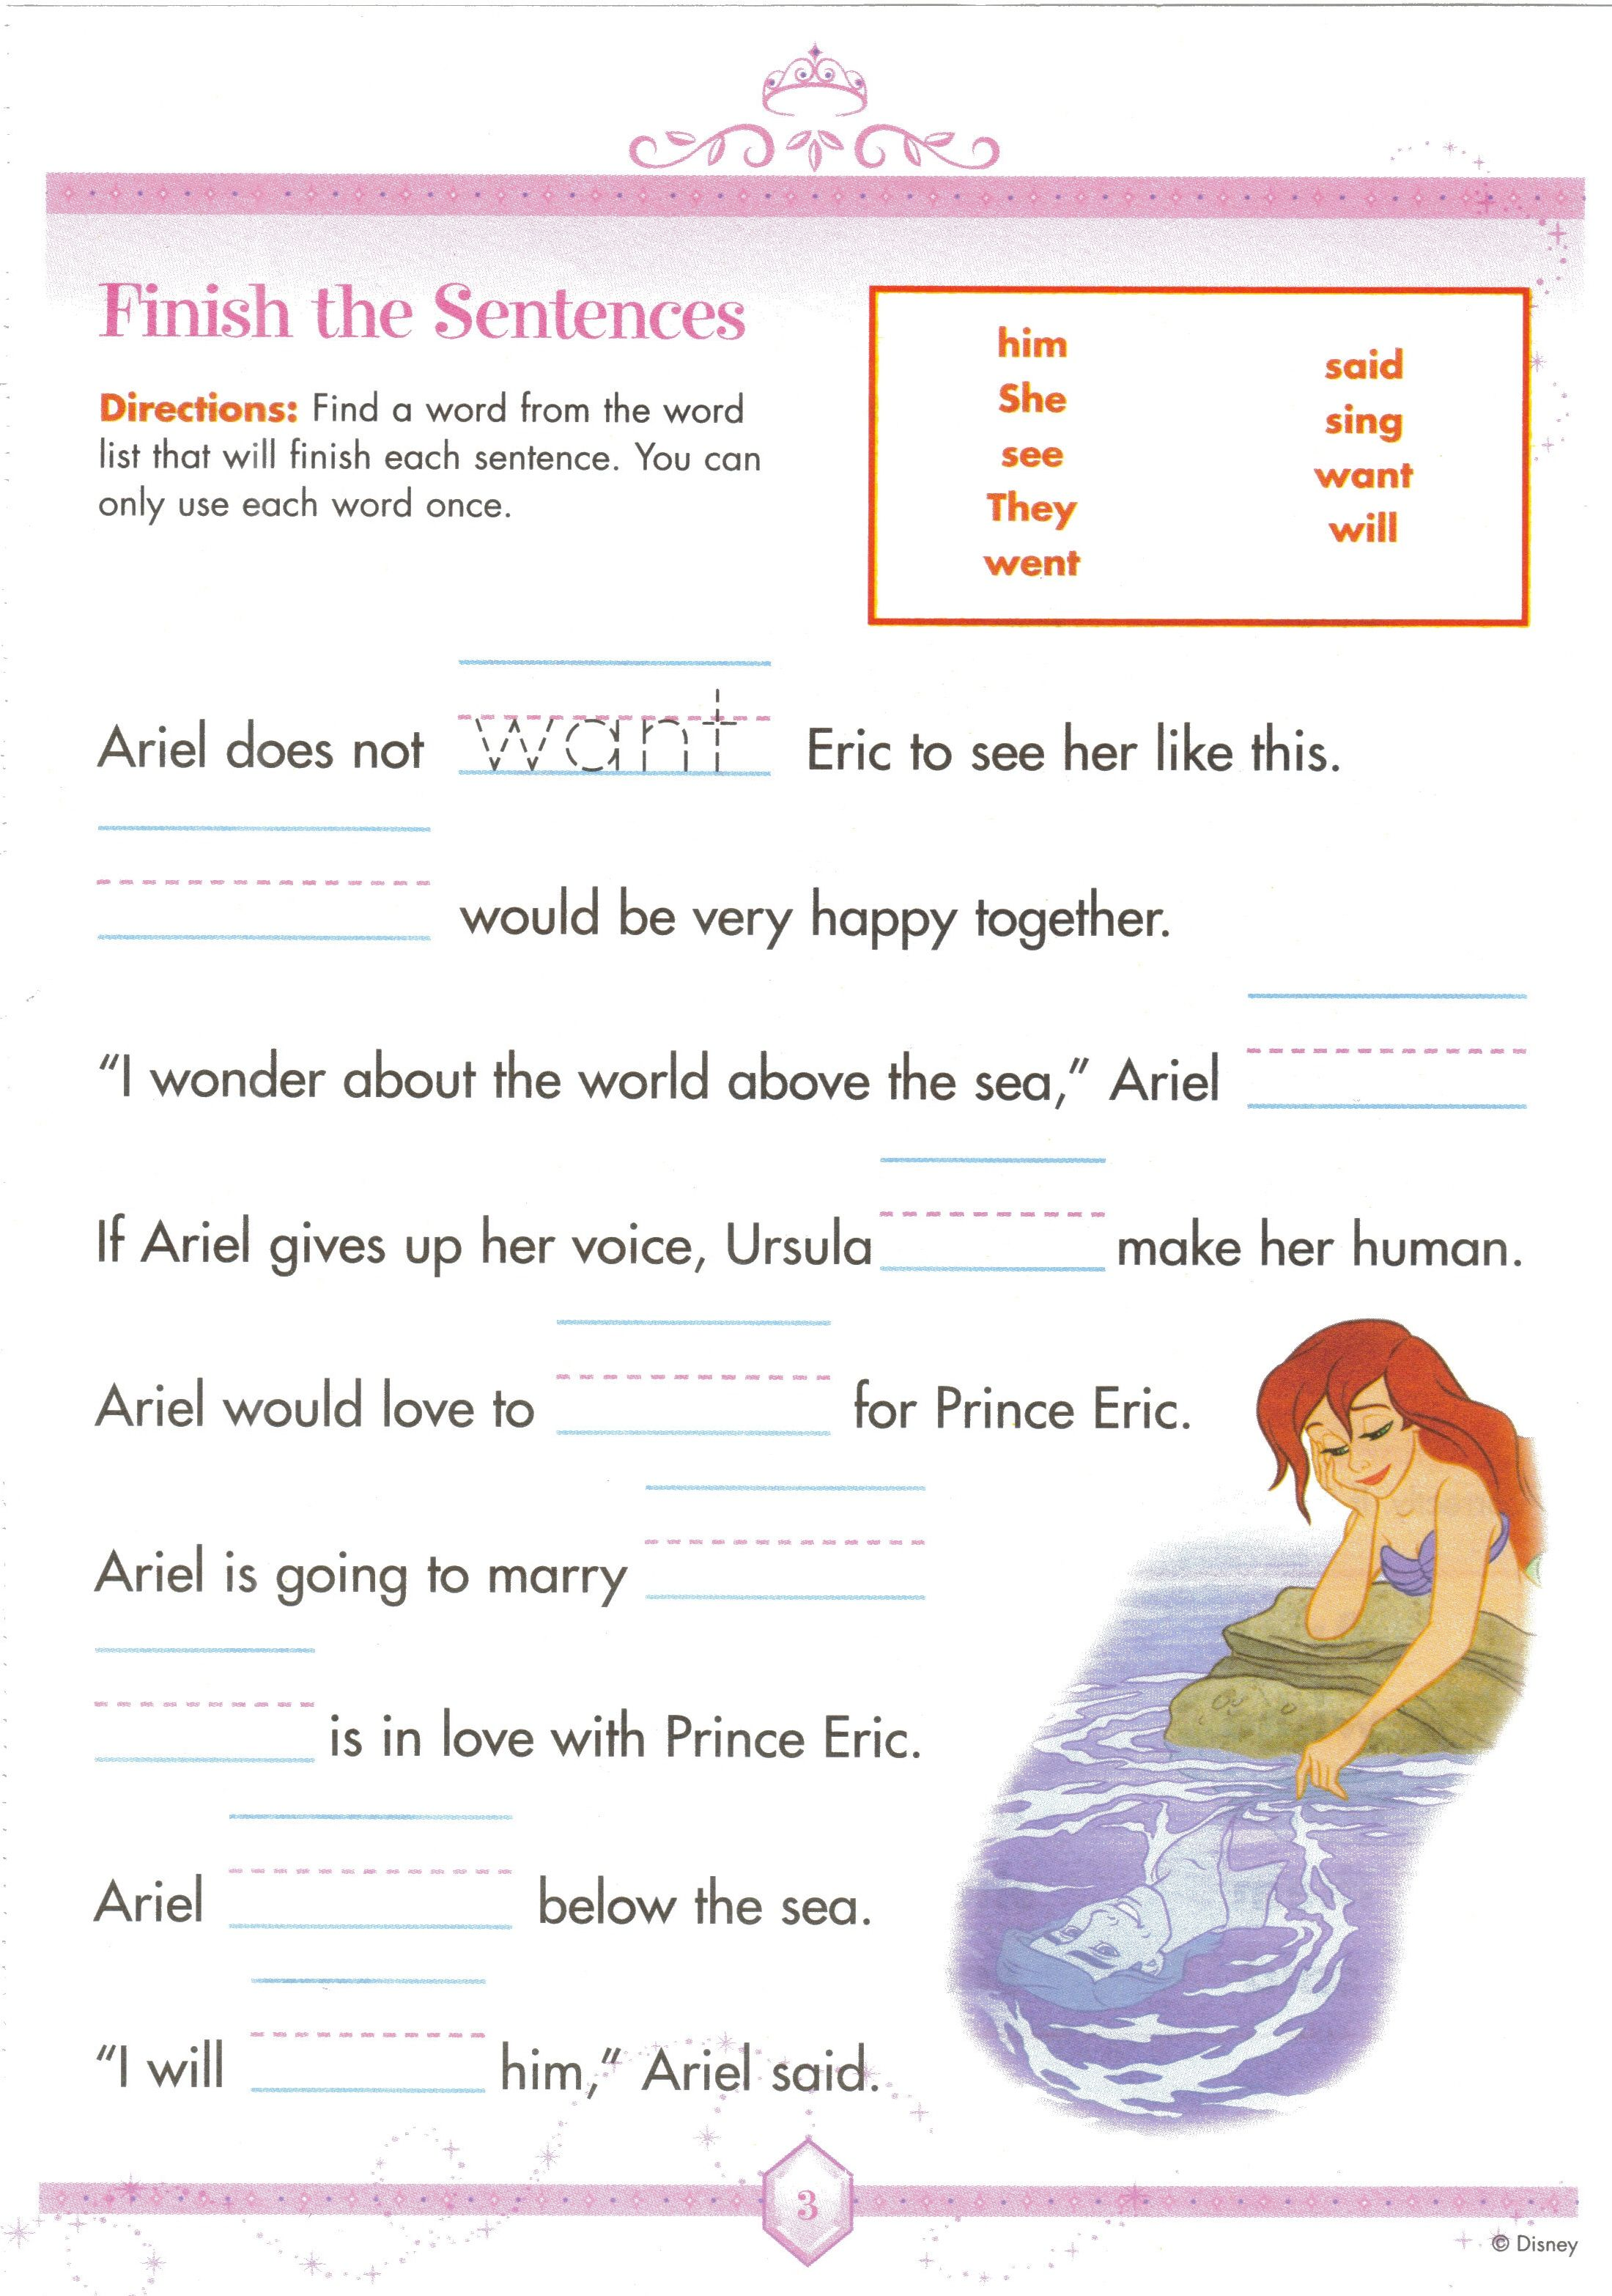 Weirdmailus  Pretty  Images About Worksheets On Pinterest  Fun Facts For Kids  With Exciting  Images About Worksheets On Pinterest  Fun Facts For Kids Earth Day Worksheets And Jungles With Delightful Library Activity Worksheets Also Free Printable Multiplication Color By Number Worksheets In Addition Free Fifth Grade Reading Comprehension Worksheets And Spanish Days Of The Week Worksheets As Well As Pssa Practice Worksheets Additionally Smart Goals For Students Worksheet From Pinterestcom With Weirdmailus  Exciting  Images About Worksheets On Pinterest  Fun Facts For Kids  With Delightful  Images About Worksheets On Pinterest  Fun Facts For Kids Earth Day Worksheets And Jungles And Pretty Library Activity Worksheets Also Free Printable Multiplication Color By Number Worksheets In Addition Free Fifth Grade Reading Comprehension Worksheets From Pinterestcom